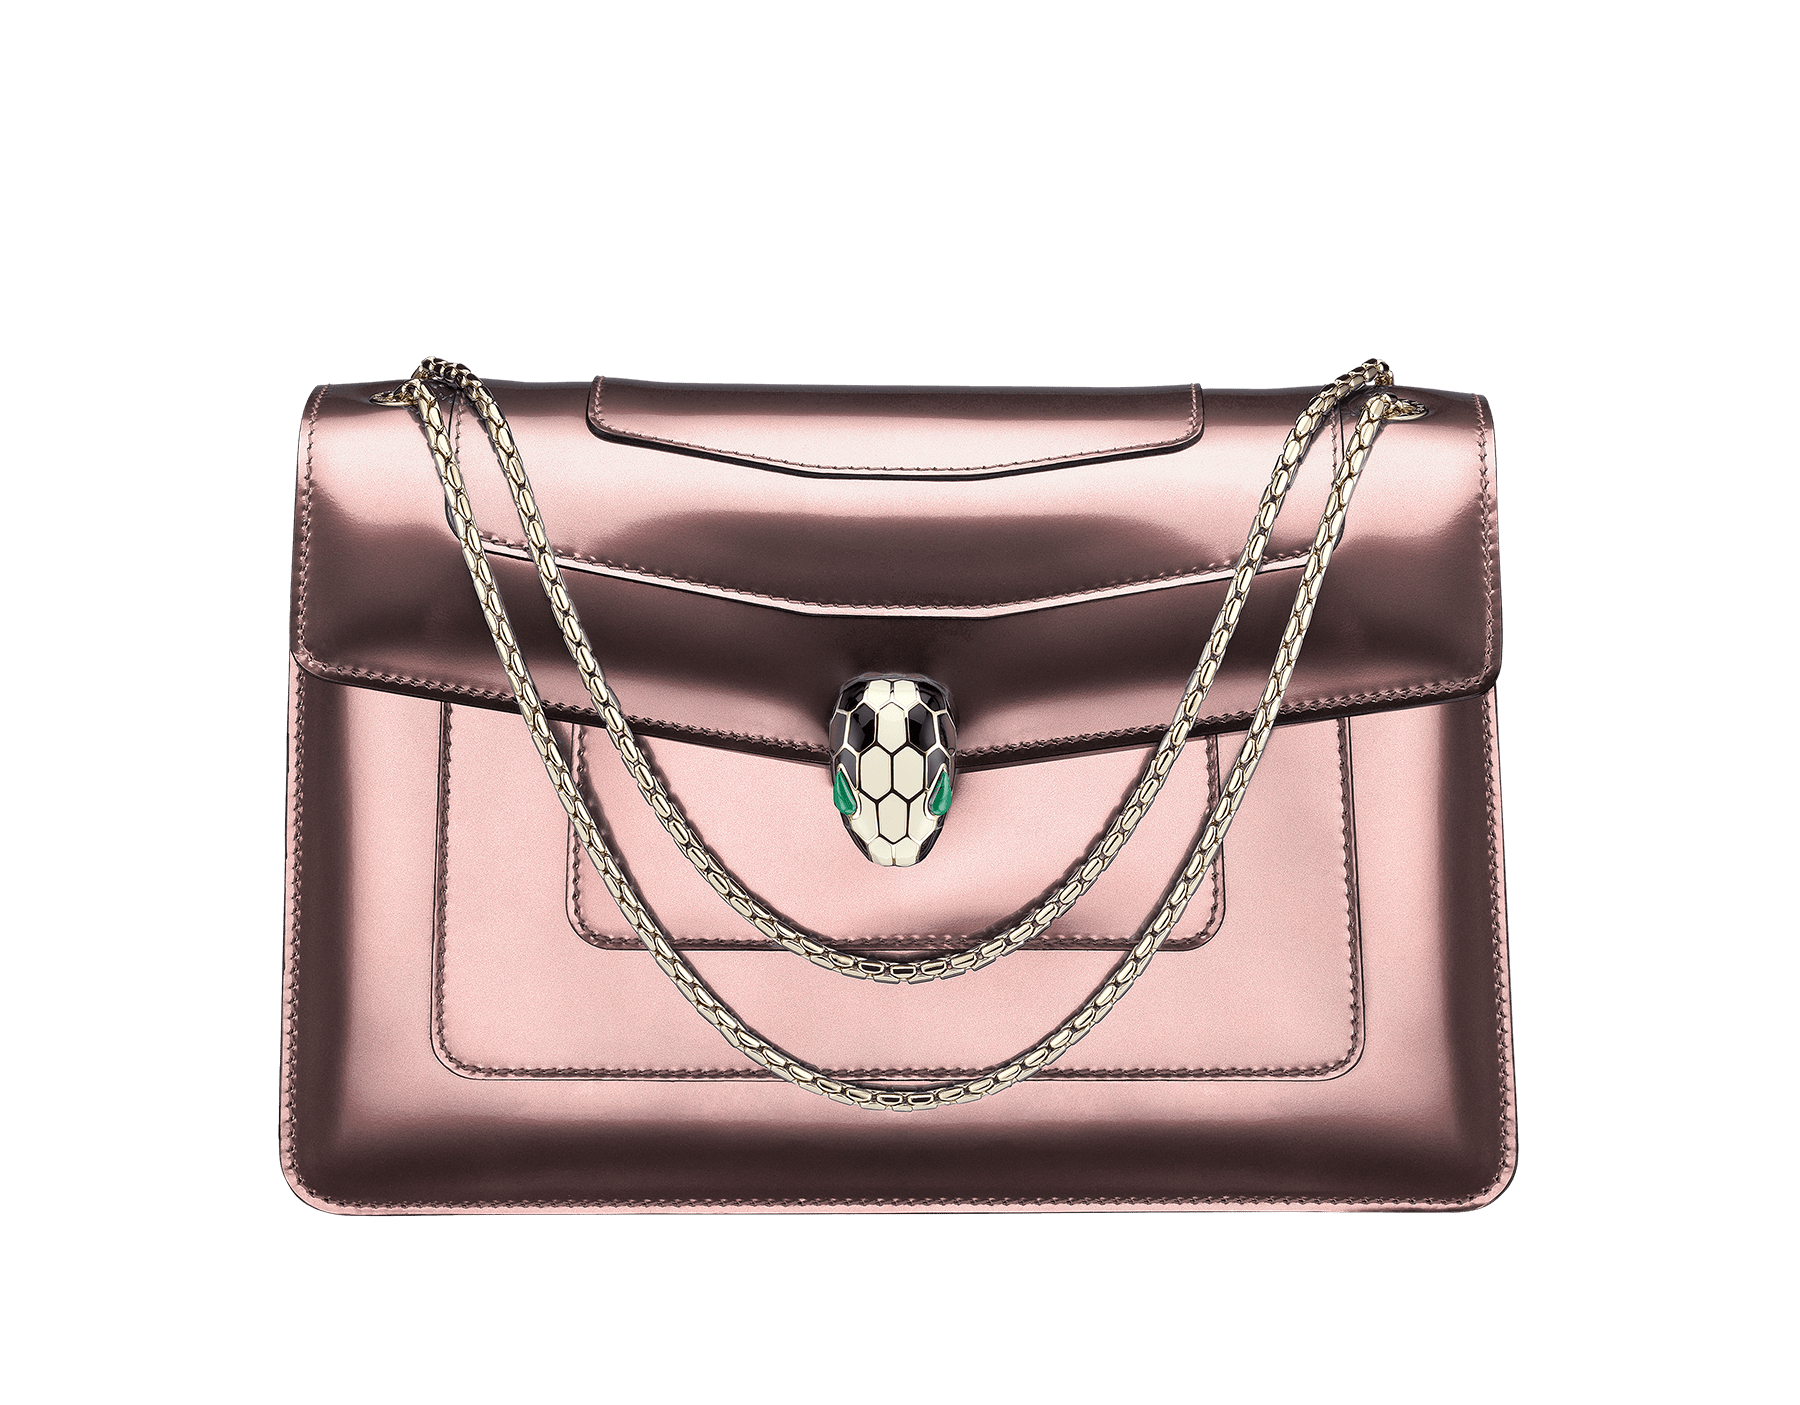 Flap cover bag Serpenti Forever in rose quartz brushed metallic calf leather. Brass light gold plated snake head closure in black and white enamel, with eyes in green malachite. 284803 image 1